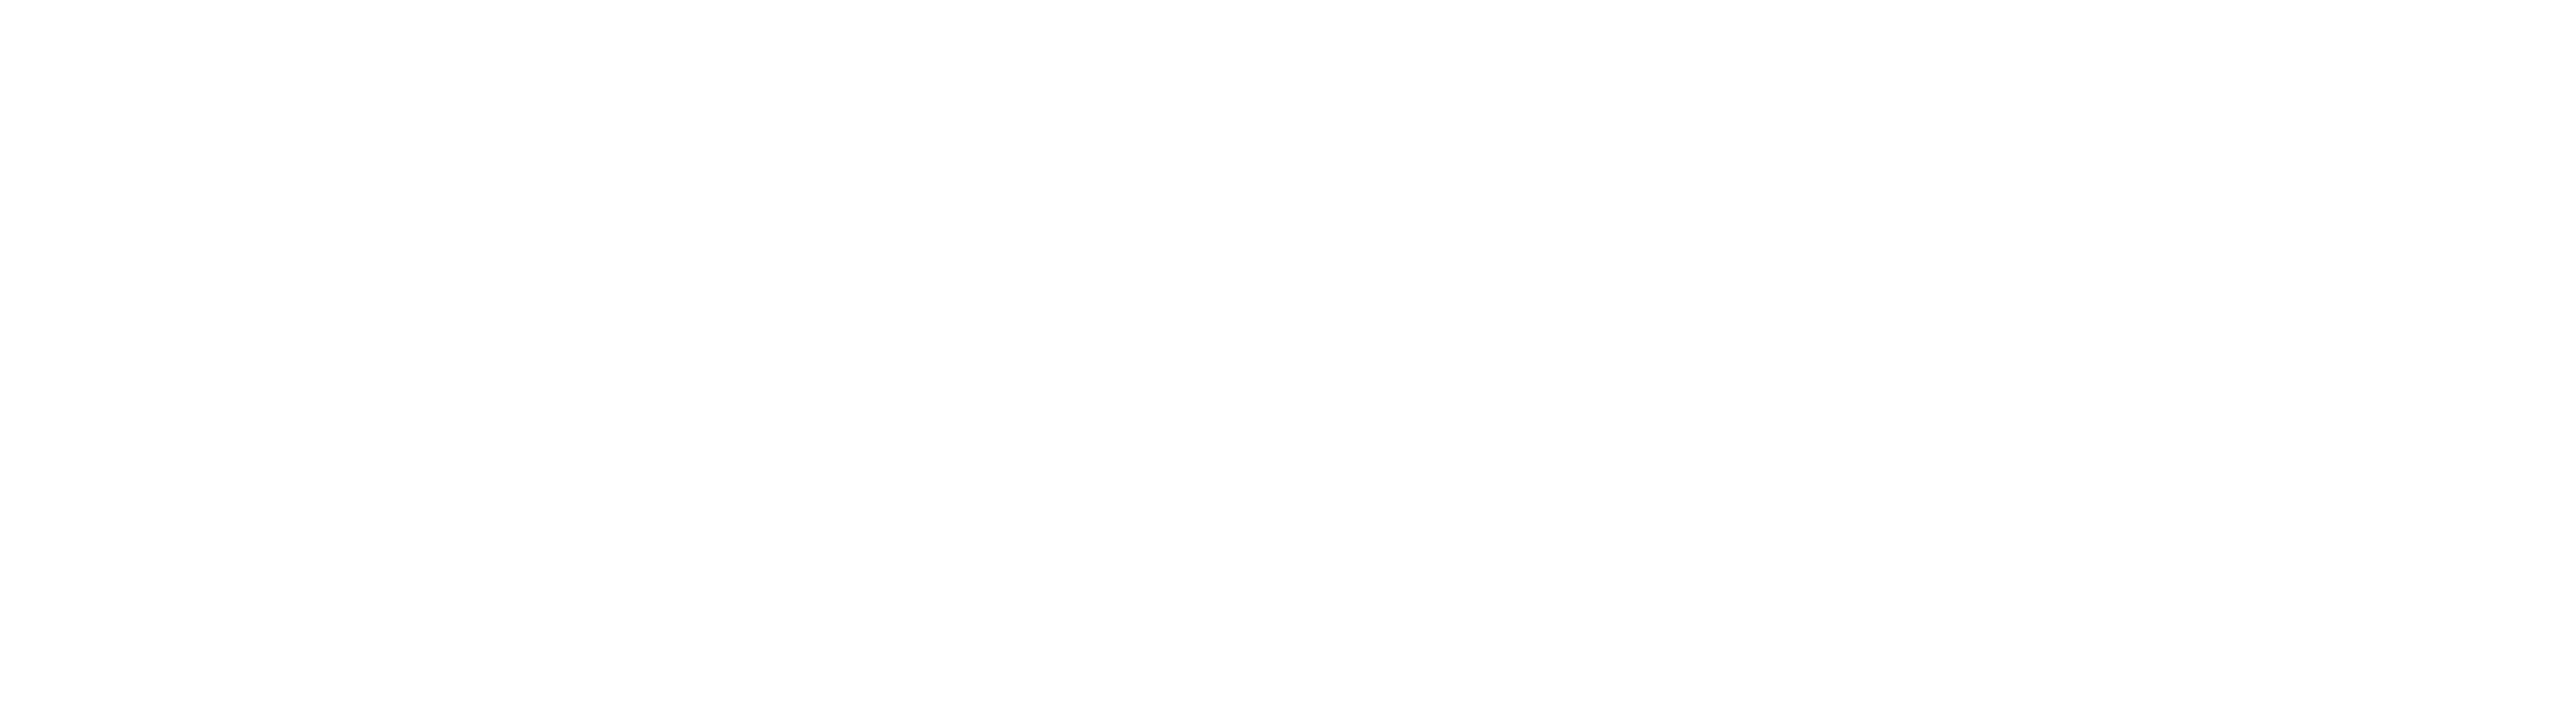 Betty's Flowers and Gifts - Flower Delivery in Aubrey, TX